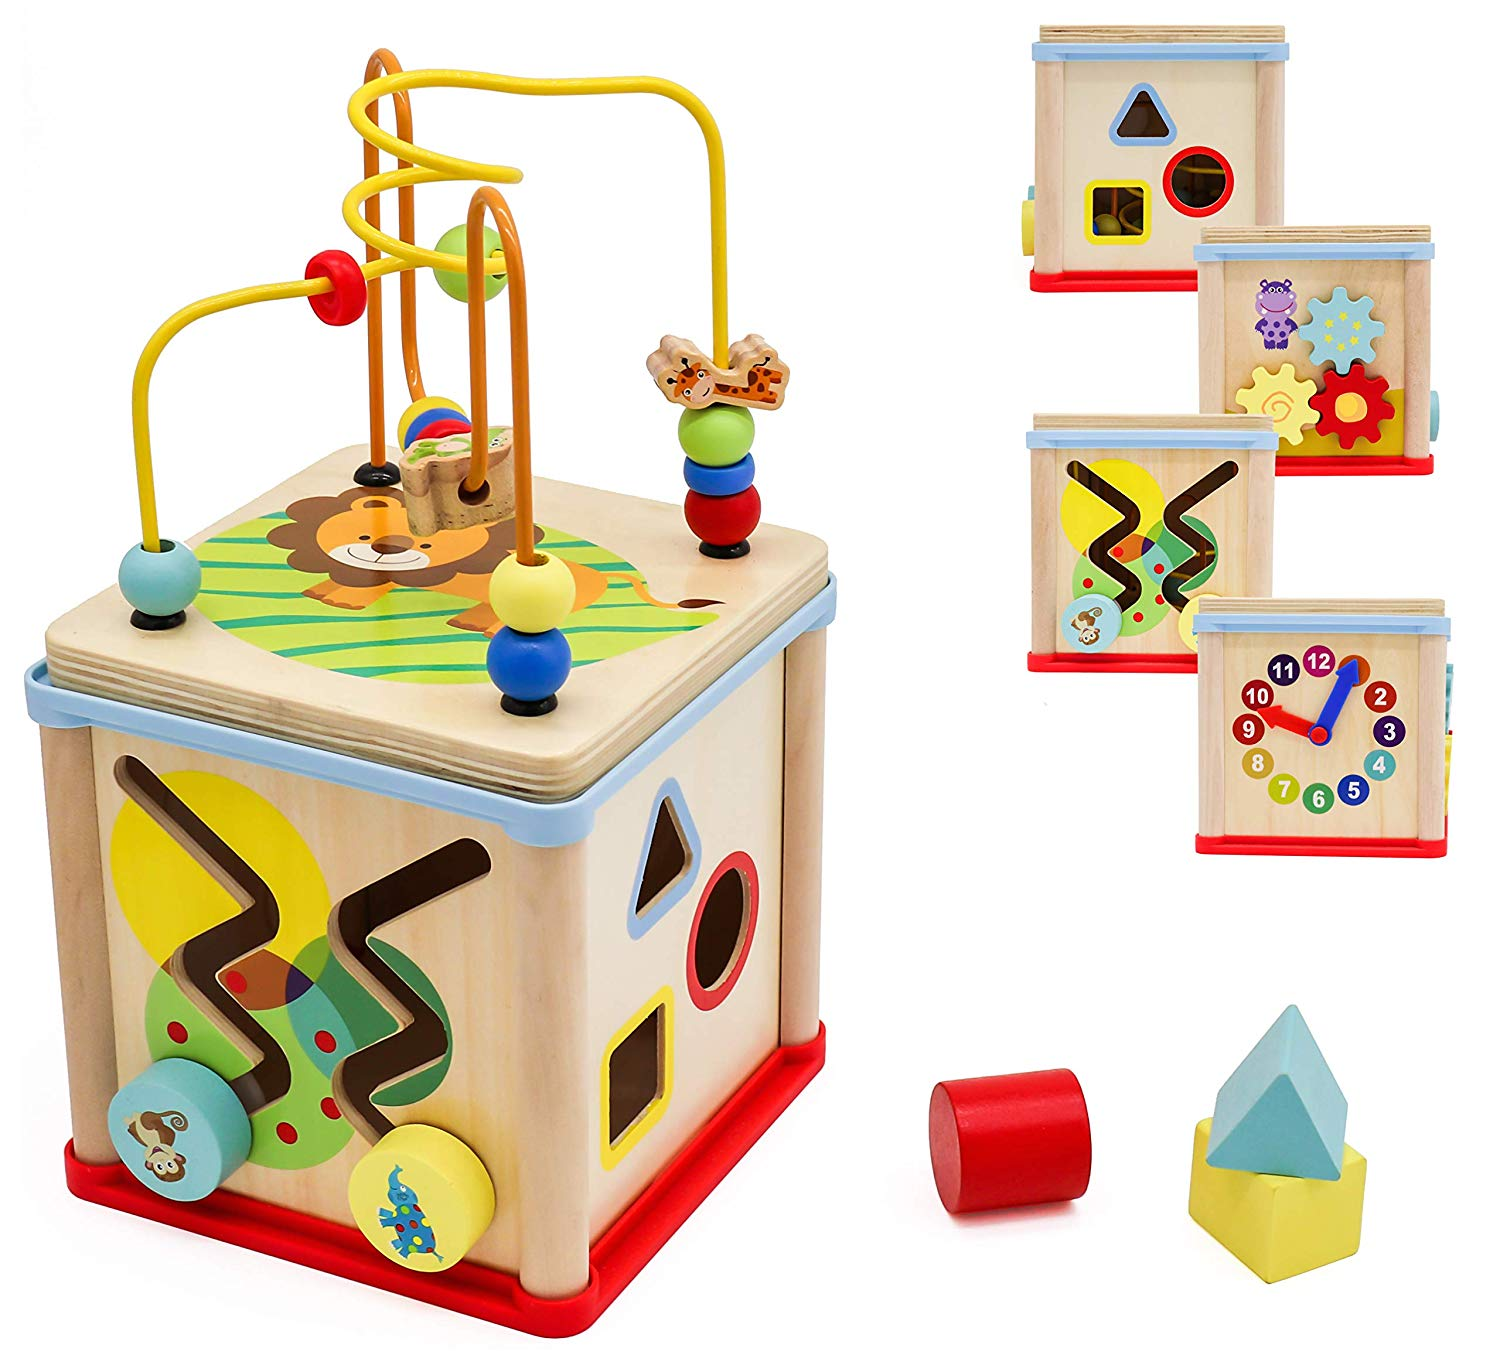 Pidoko Kids Wooden Activity Cube for Toddlers - Fun Learning Toy for Boys and Girls